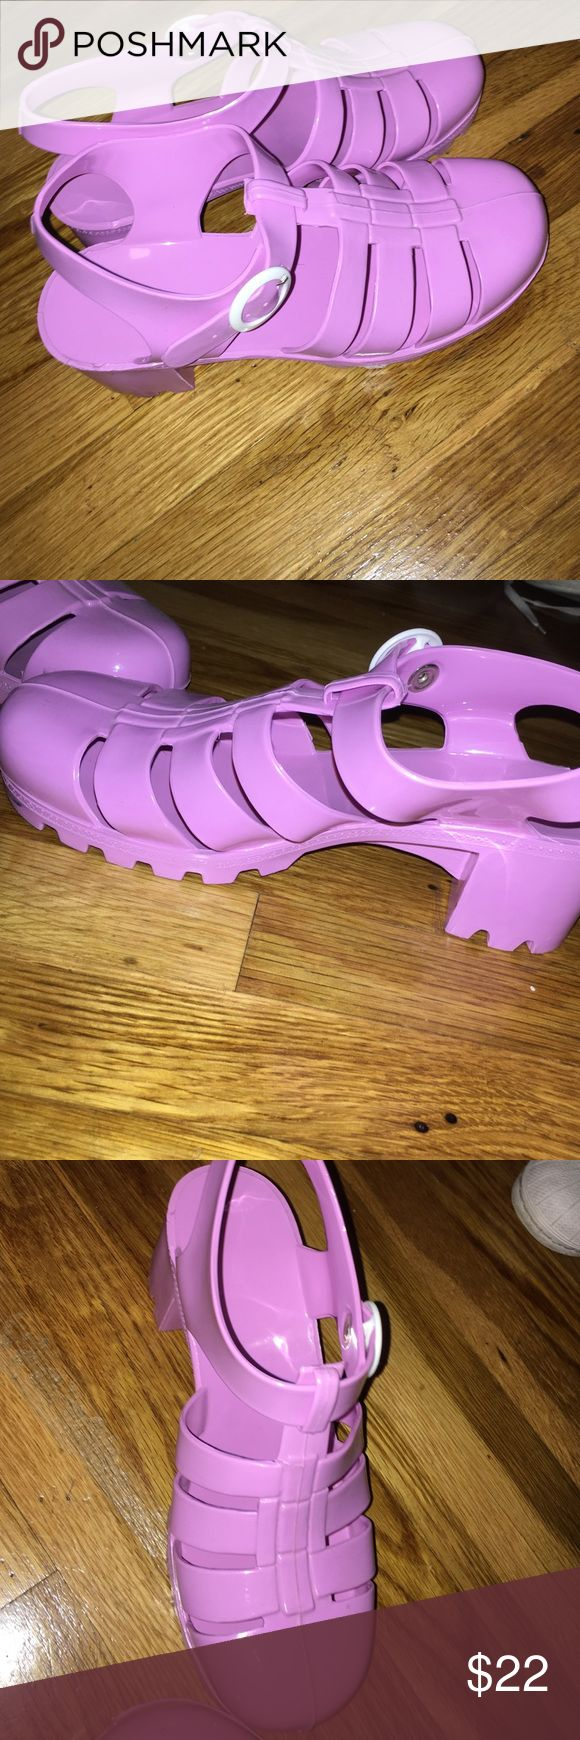 Lavender American Apparel Jelly Heels Worn twice. Selling them for this price because of authenticity. Love them!!! American Apparel Shoes Heels